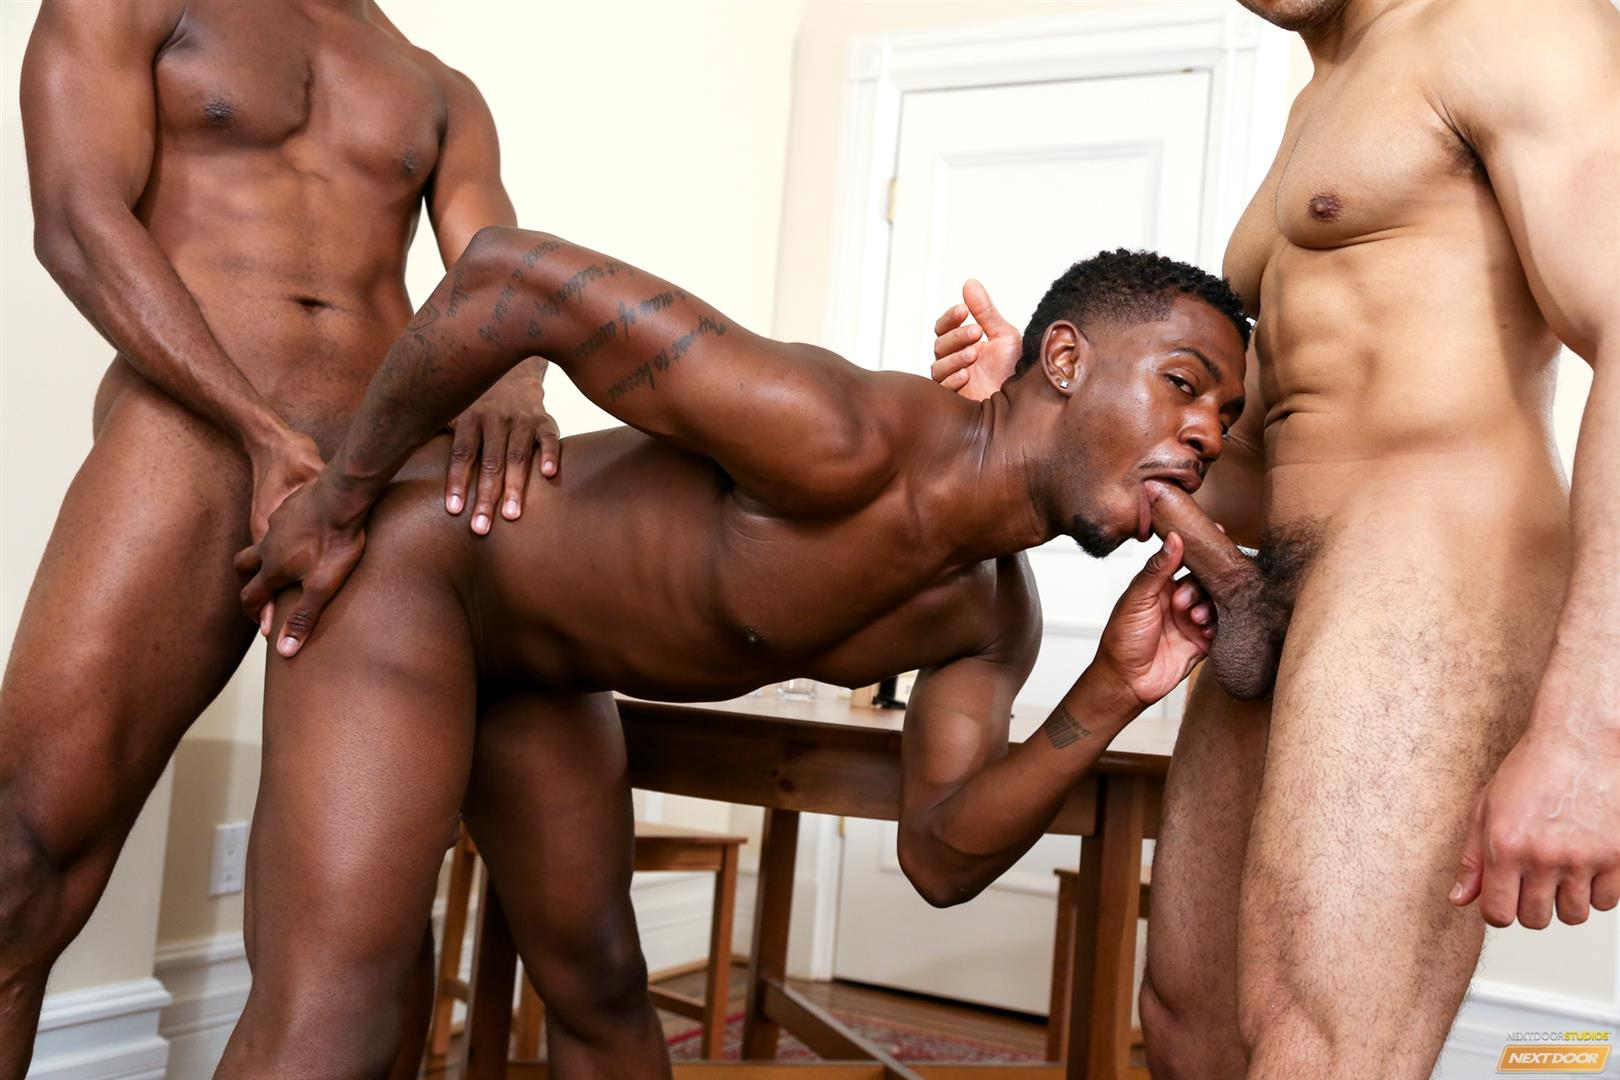 Next Door Ebony Krave Moore and Andre Donovan and Rex Cobra Big Black Cock Amateur Gay Porn 11 Three Black Guys Playing Strip Dominoes With Their Big Black Cocks